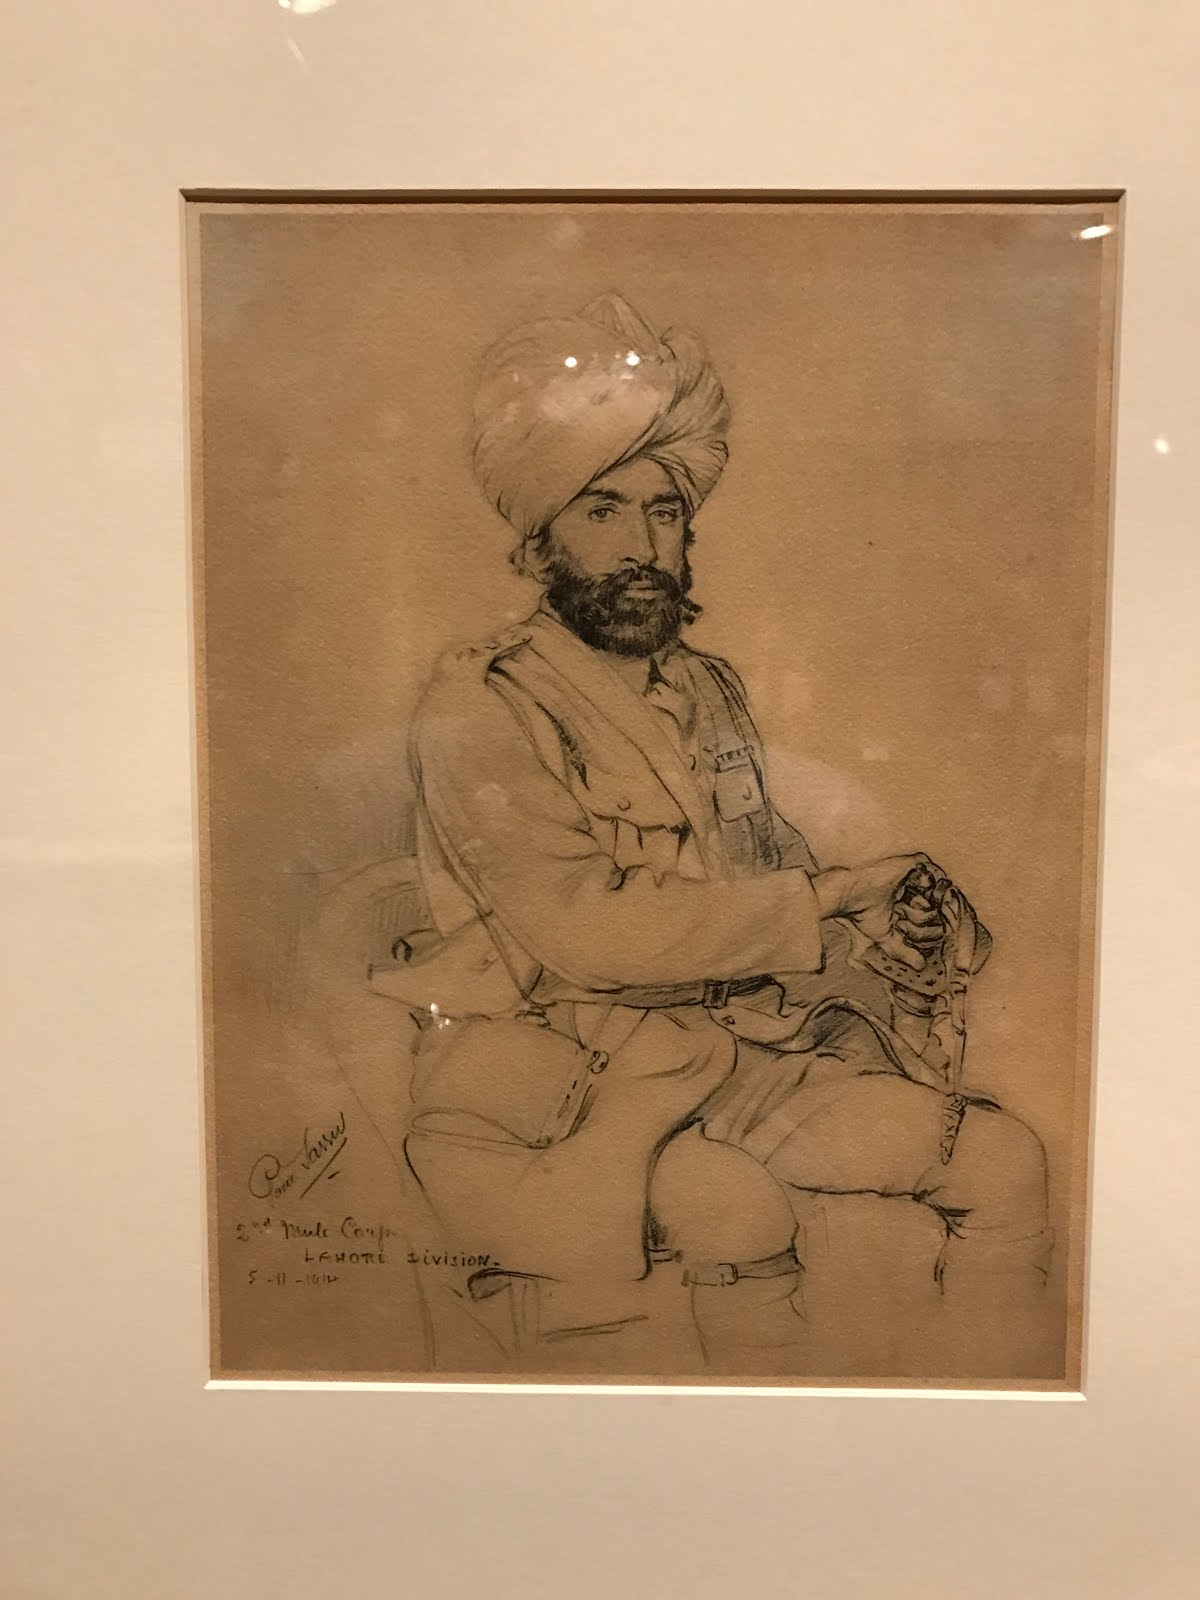 Story of the Sikhs told with respect and awe in exhibit at Phoenix Museum of Art.